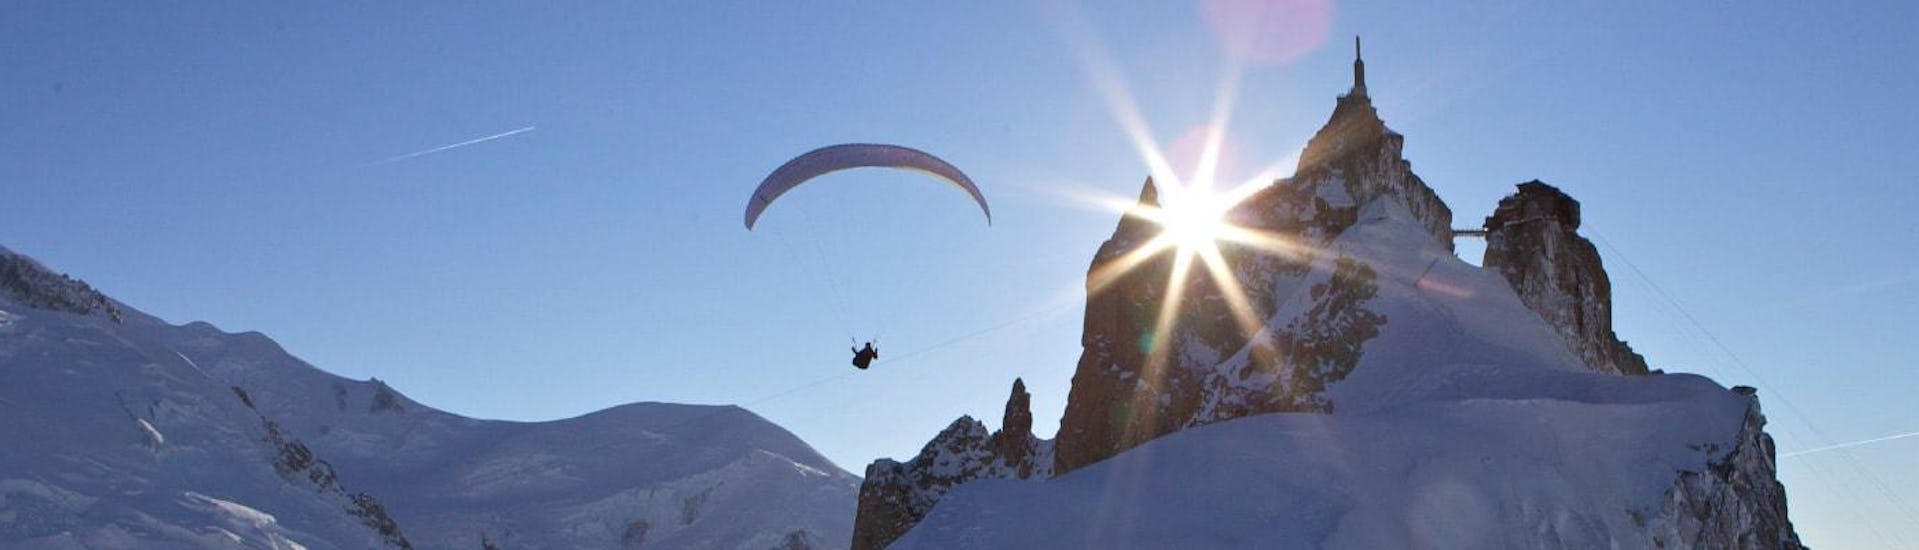 A paragliding pilot from Kailash Paragliding is doing a Tandem Paragliding Flight from the Aiguille du midi against a mountain backdrop.